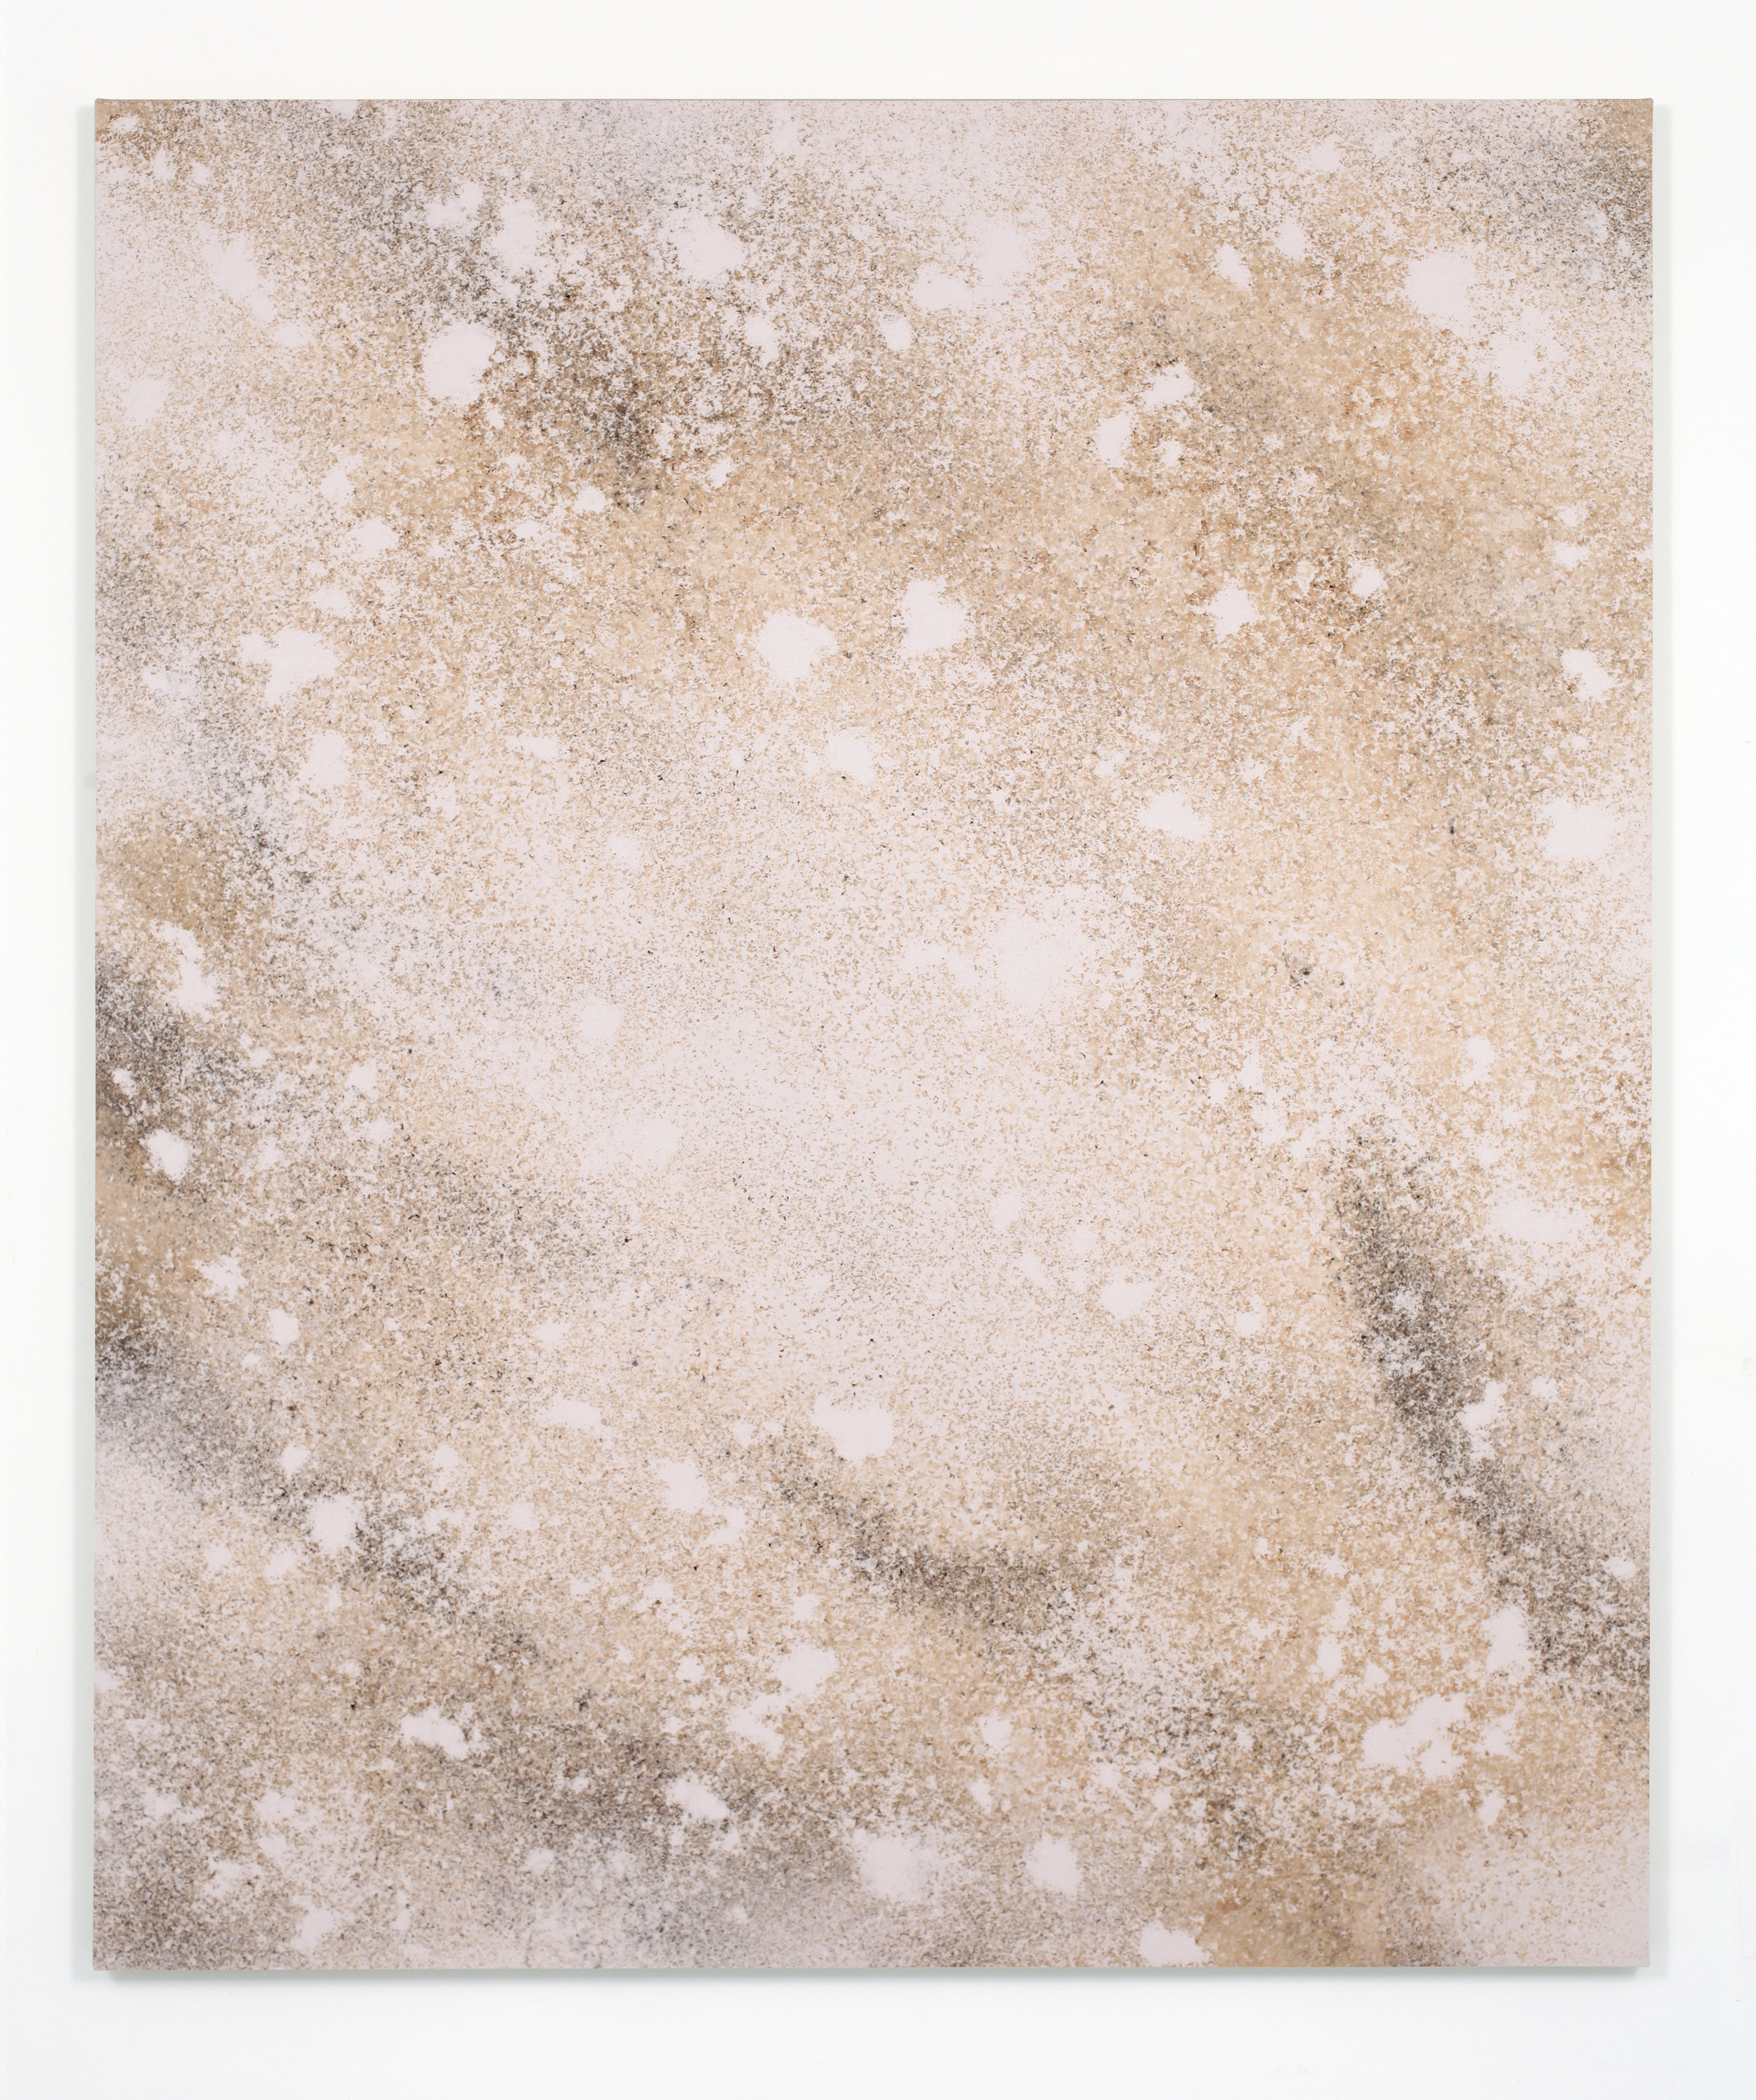 Untitled 3 (Stain), 2014